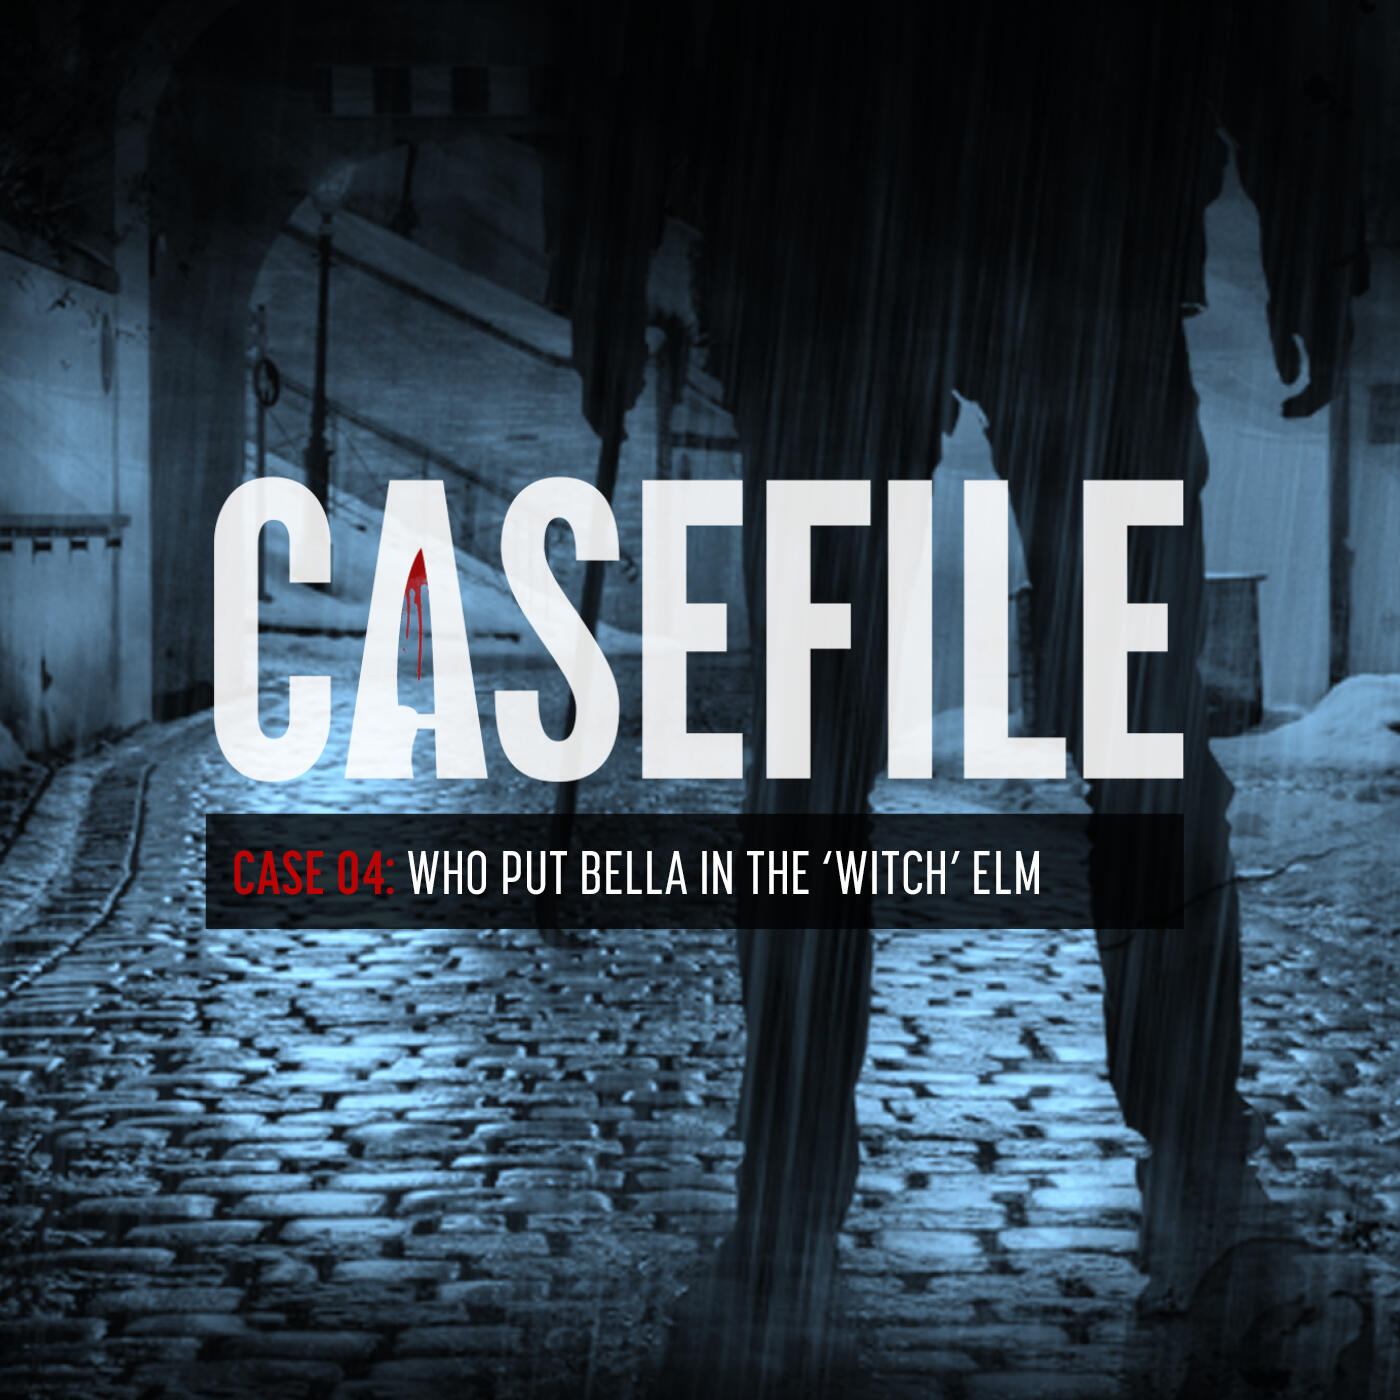 Case 04: Who Put Bella In The 'Witch' Elm